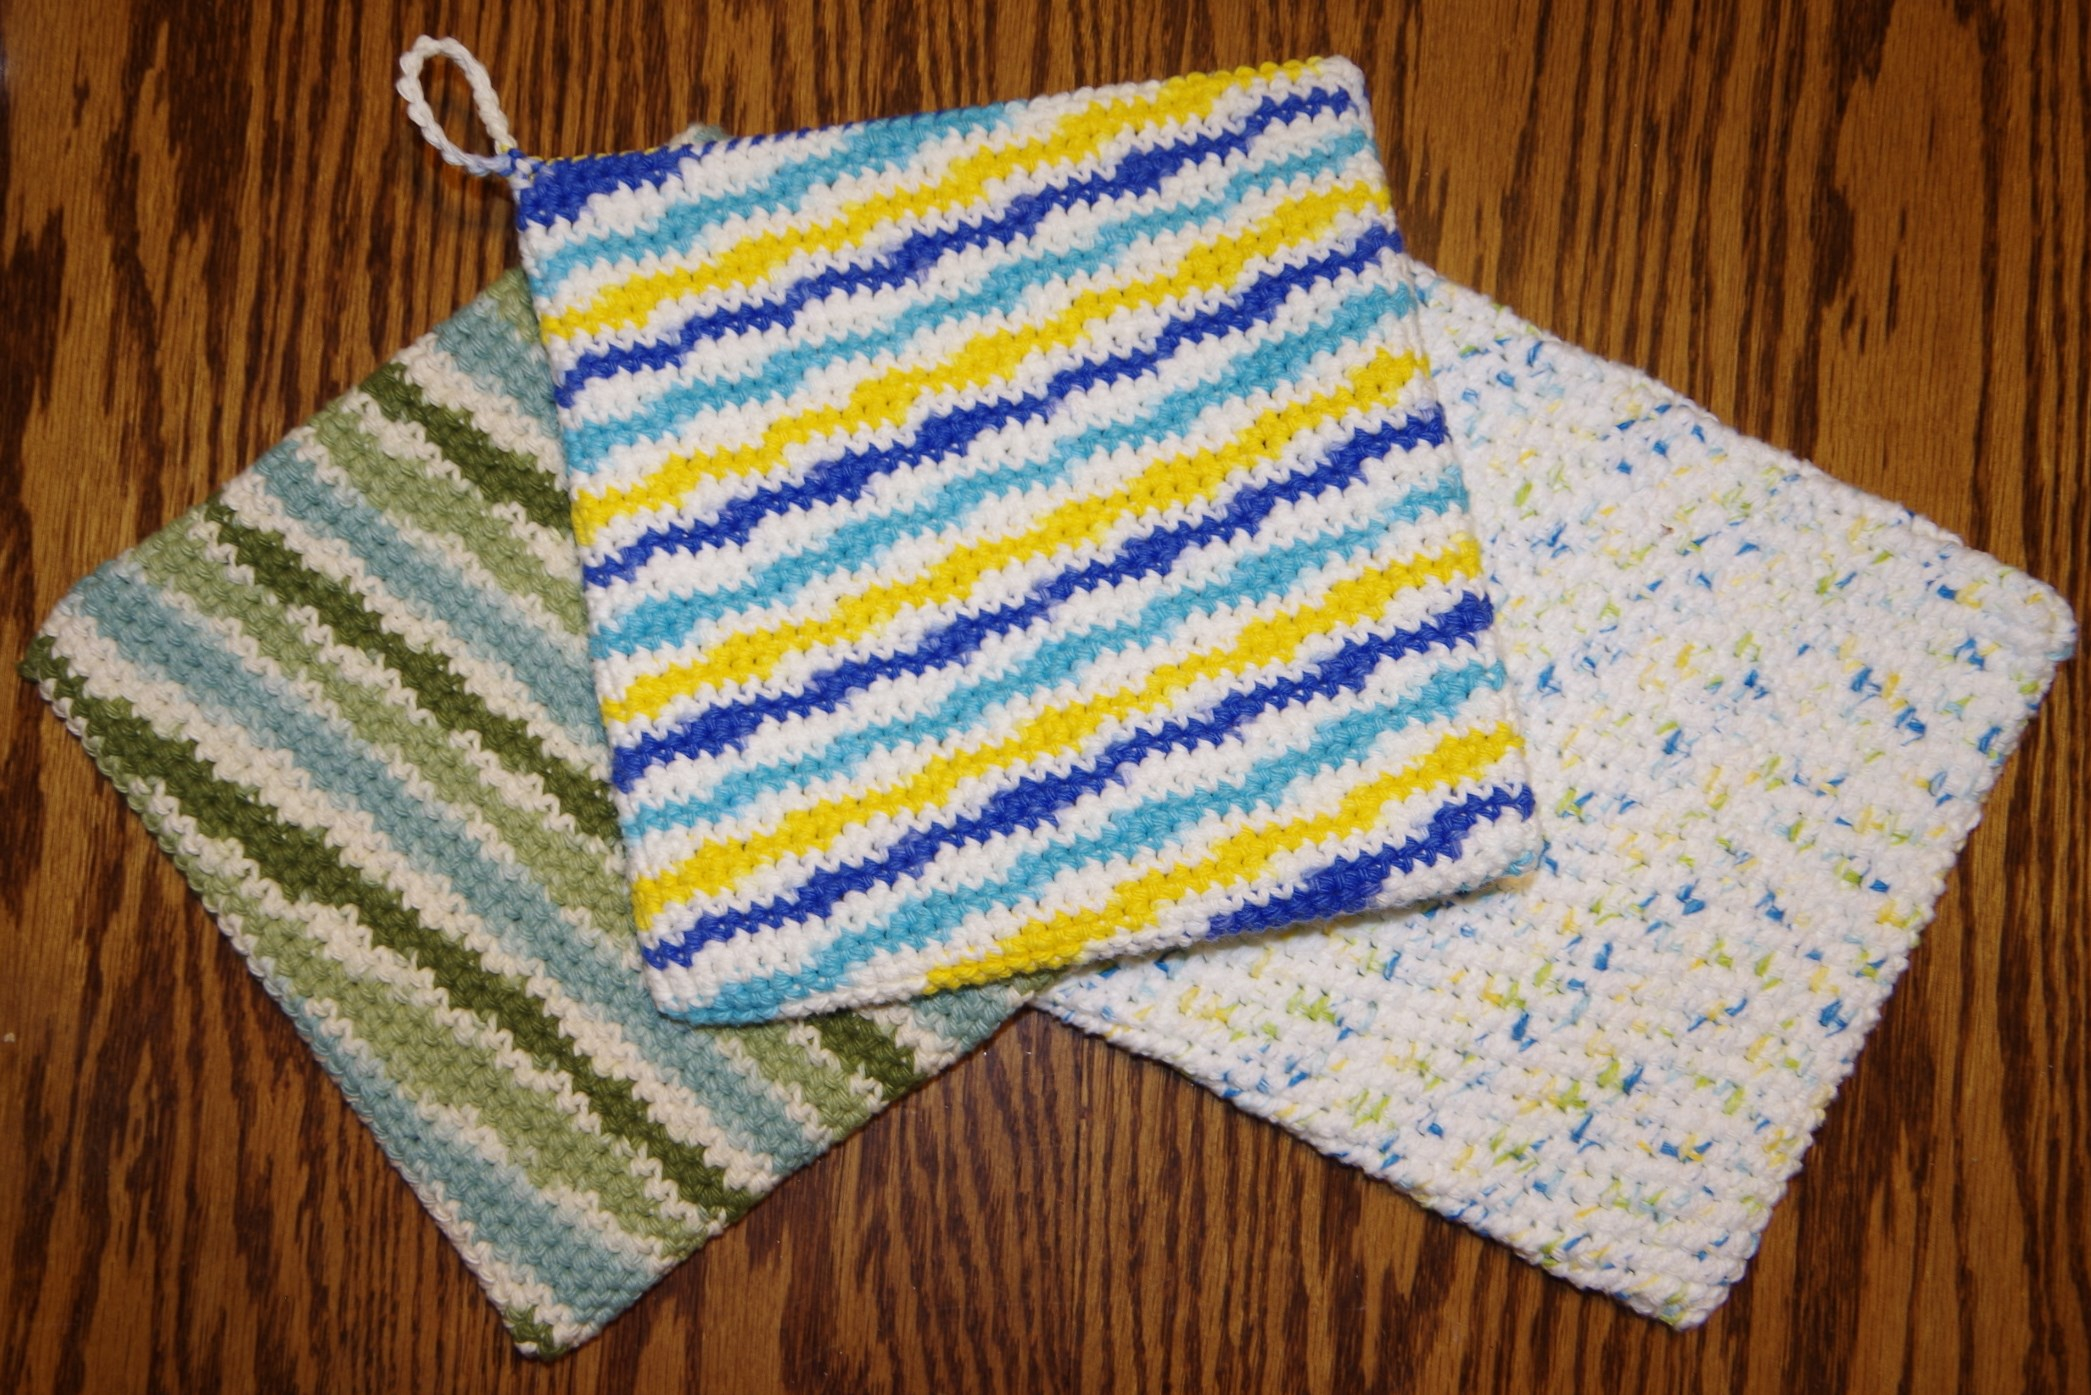 Crochet Trivets Hot Pads Double Thick Potholder Free Crochet Pattern Yay For Yarn